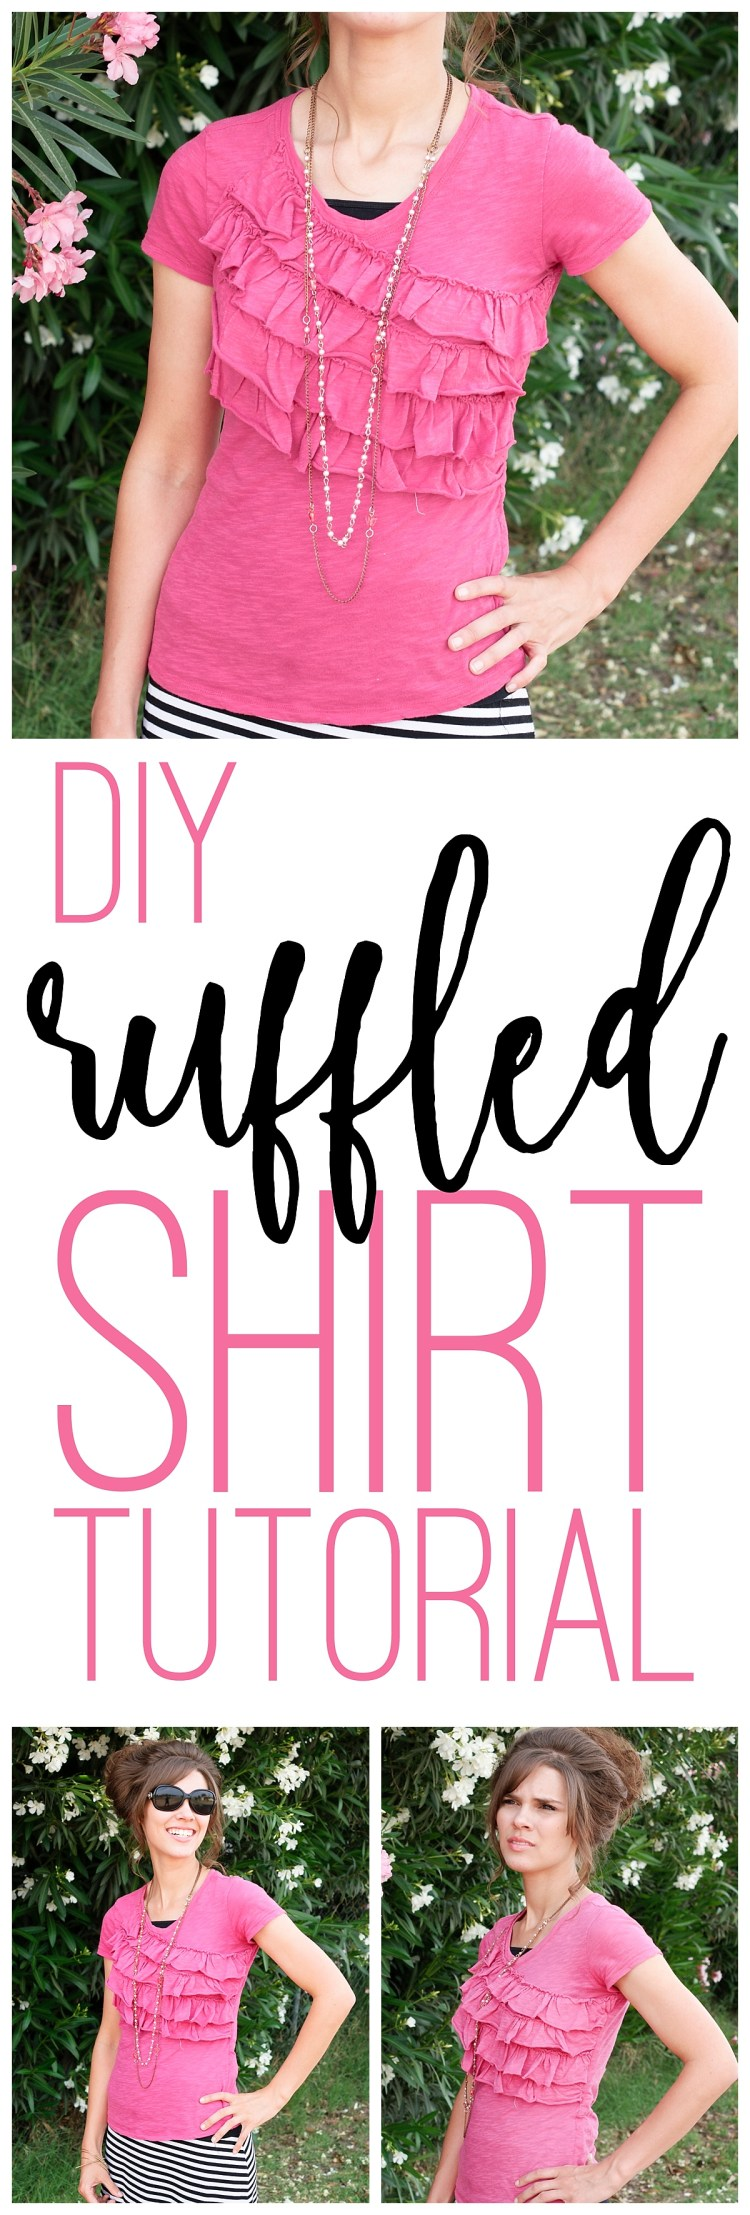 DIY Ruffle Shirt | OOTD | Free Sewing Pattern | Cute Summer Shirt | Upcycled T Shirt | Modest Outfit Inspiration | Shirt Tutorial | Summer Style | DIY Clothes | Six Clever Sisters | This cute summer shirt from Six Clever Sisters has step-by-step instructions and requires minimal sewing experience. Great easy project for a beginner to make a ruffle t shirt!